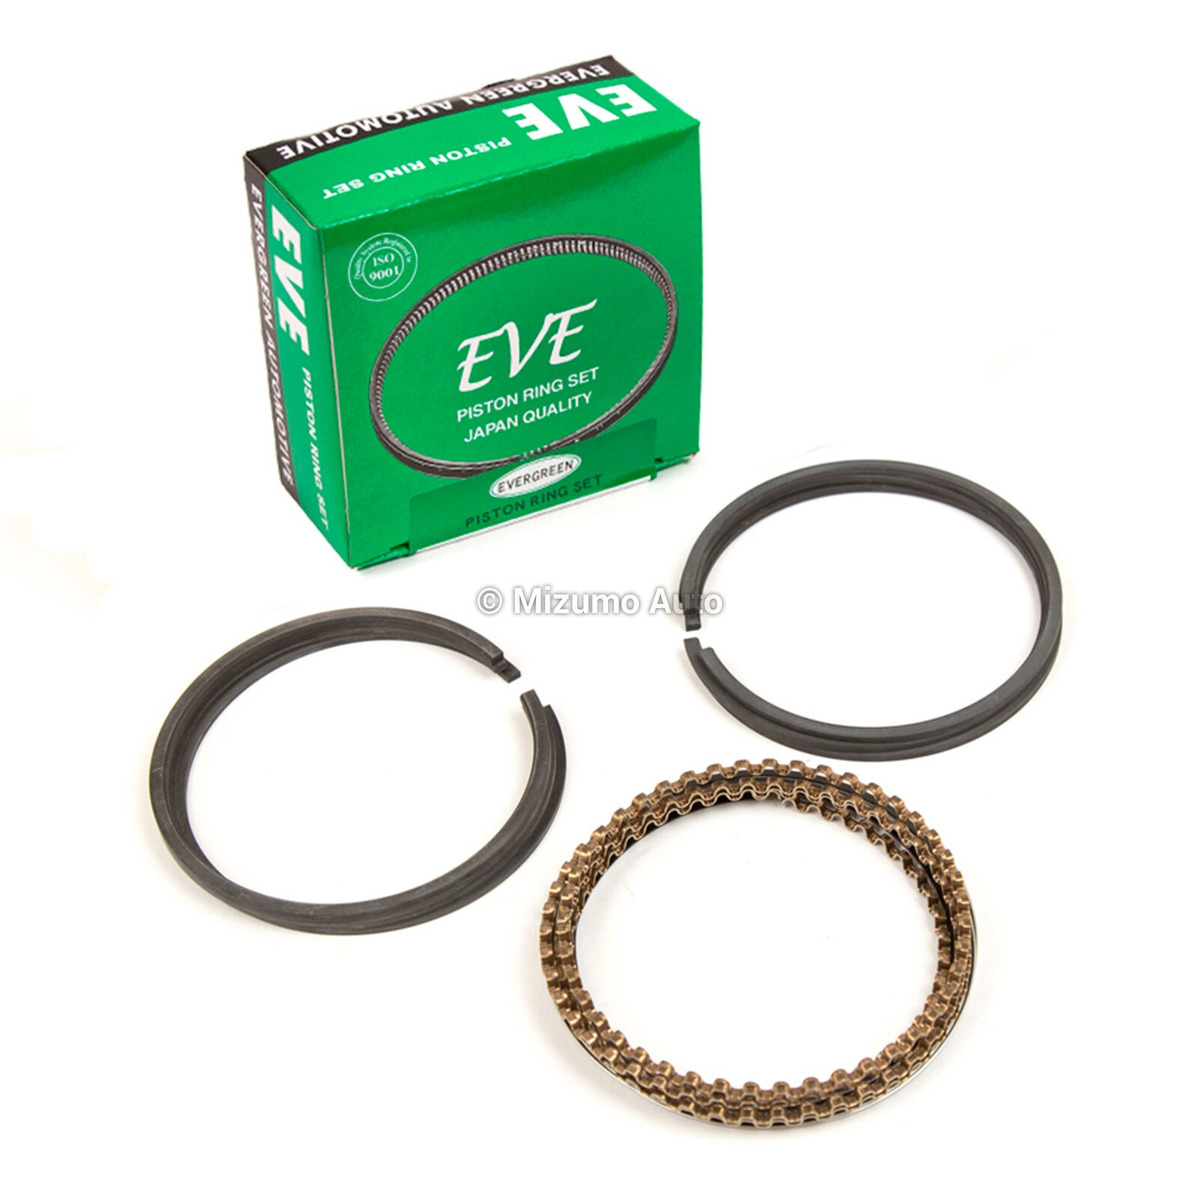 Piston Rings for 91-97 Toyota Previa Supercharged 2.4 16V 2TZFE 2TZFZE